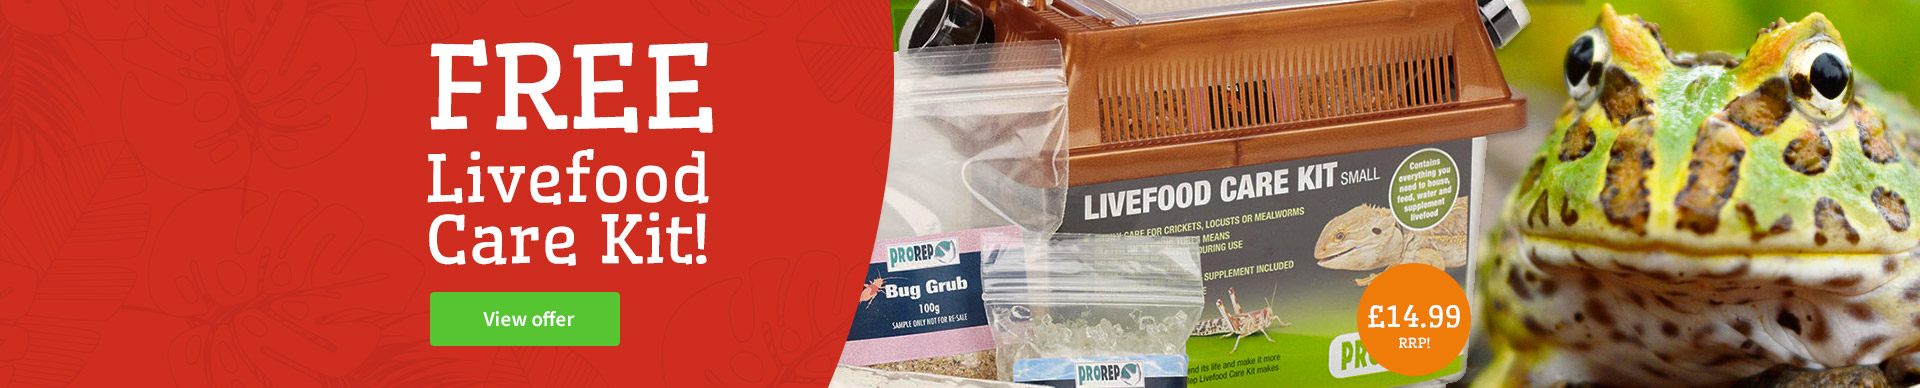 free livefood care kit